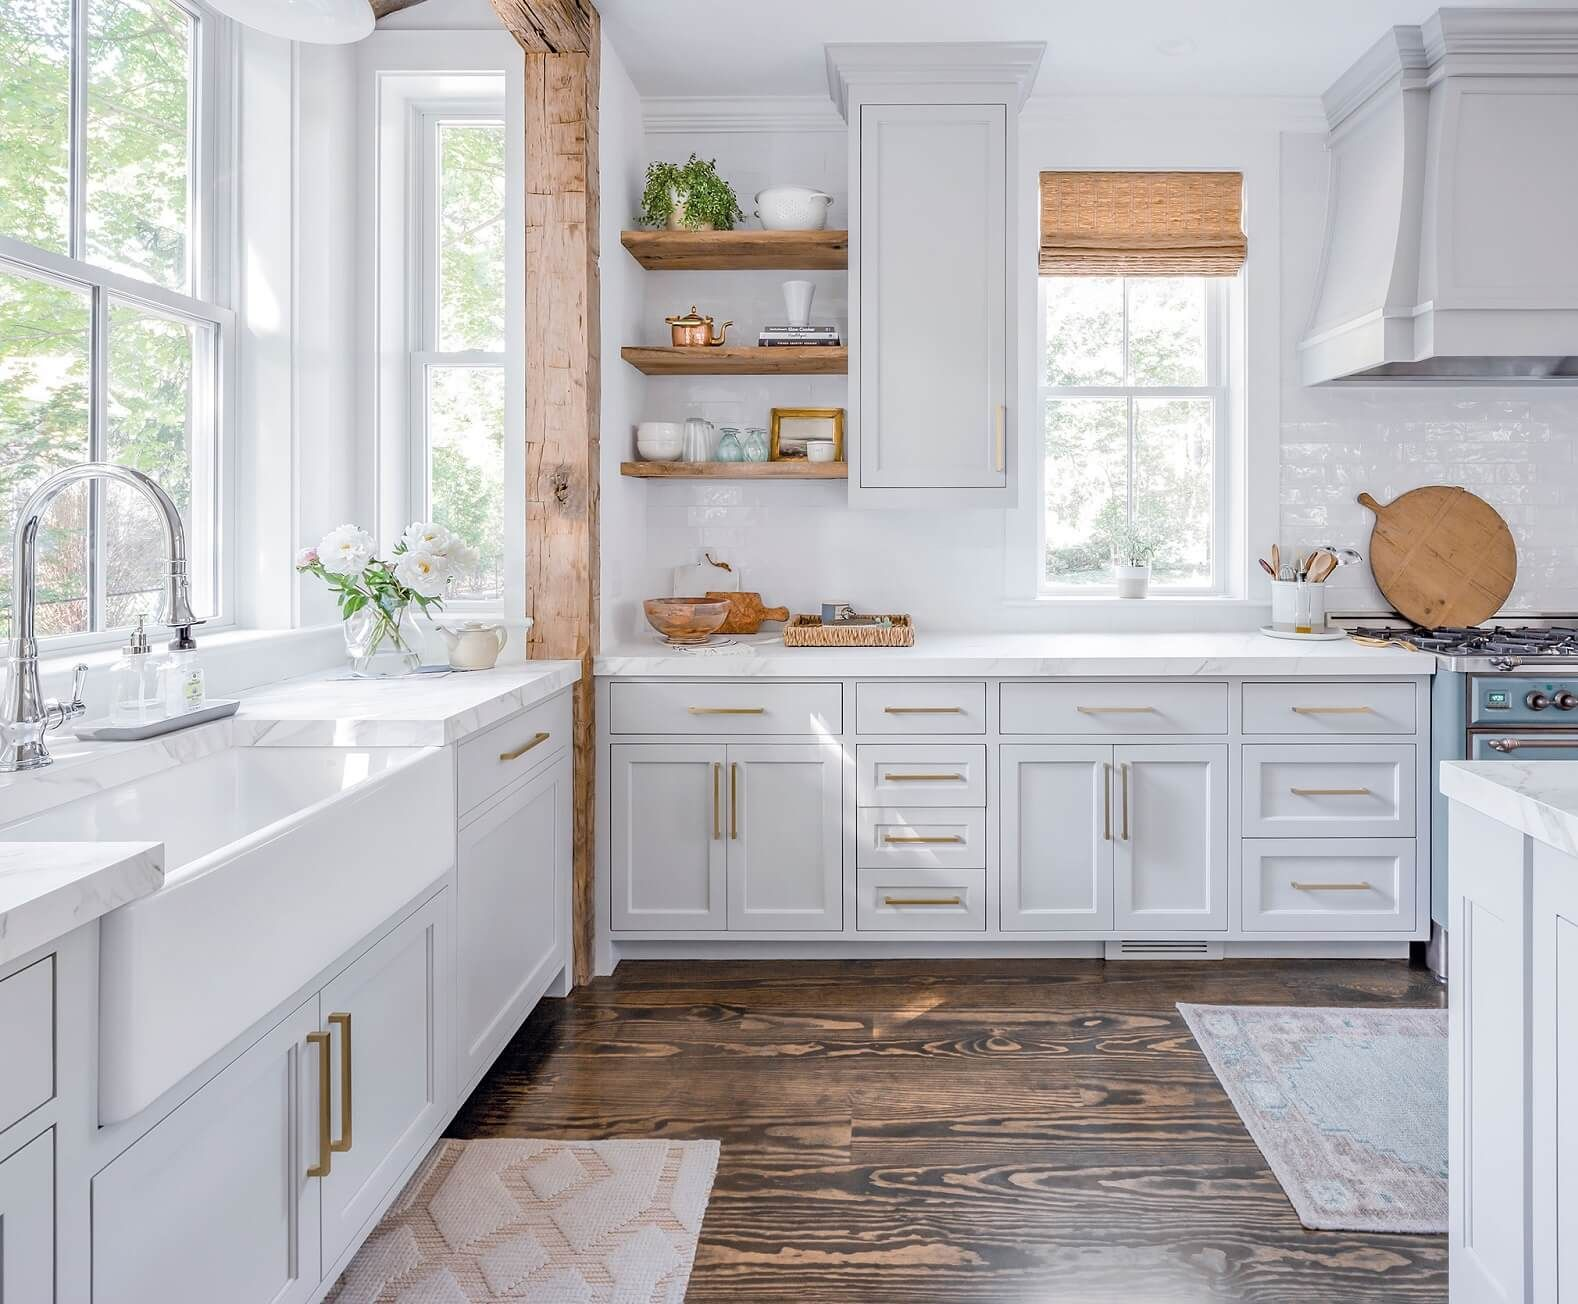 Best Coastal Kitchens Beach Decor Ideas for 2019 Design